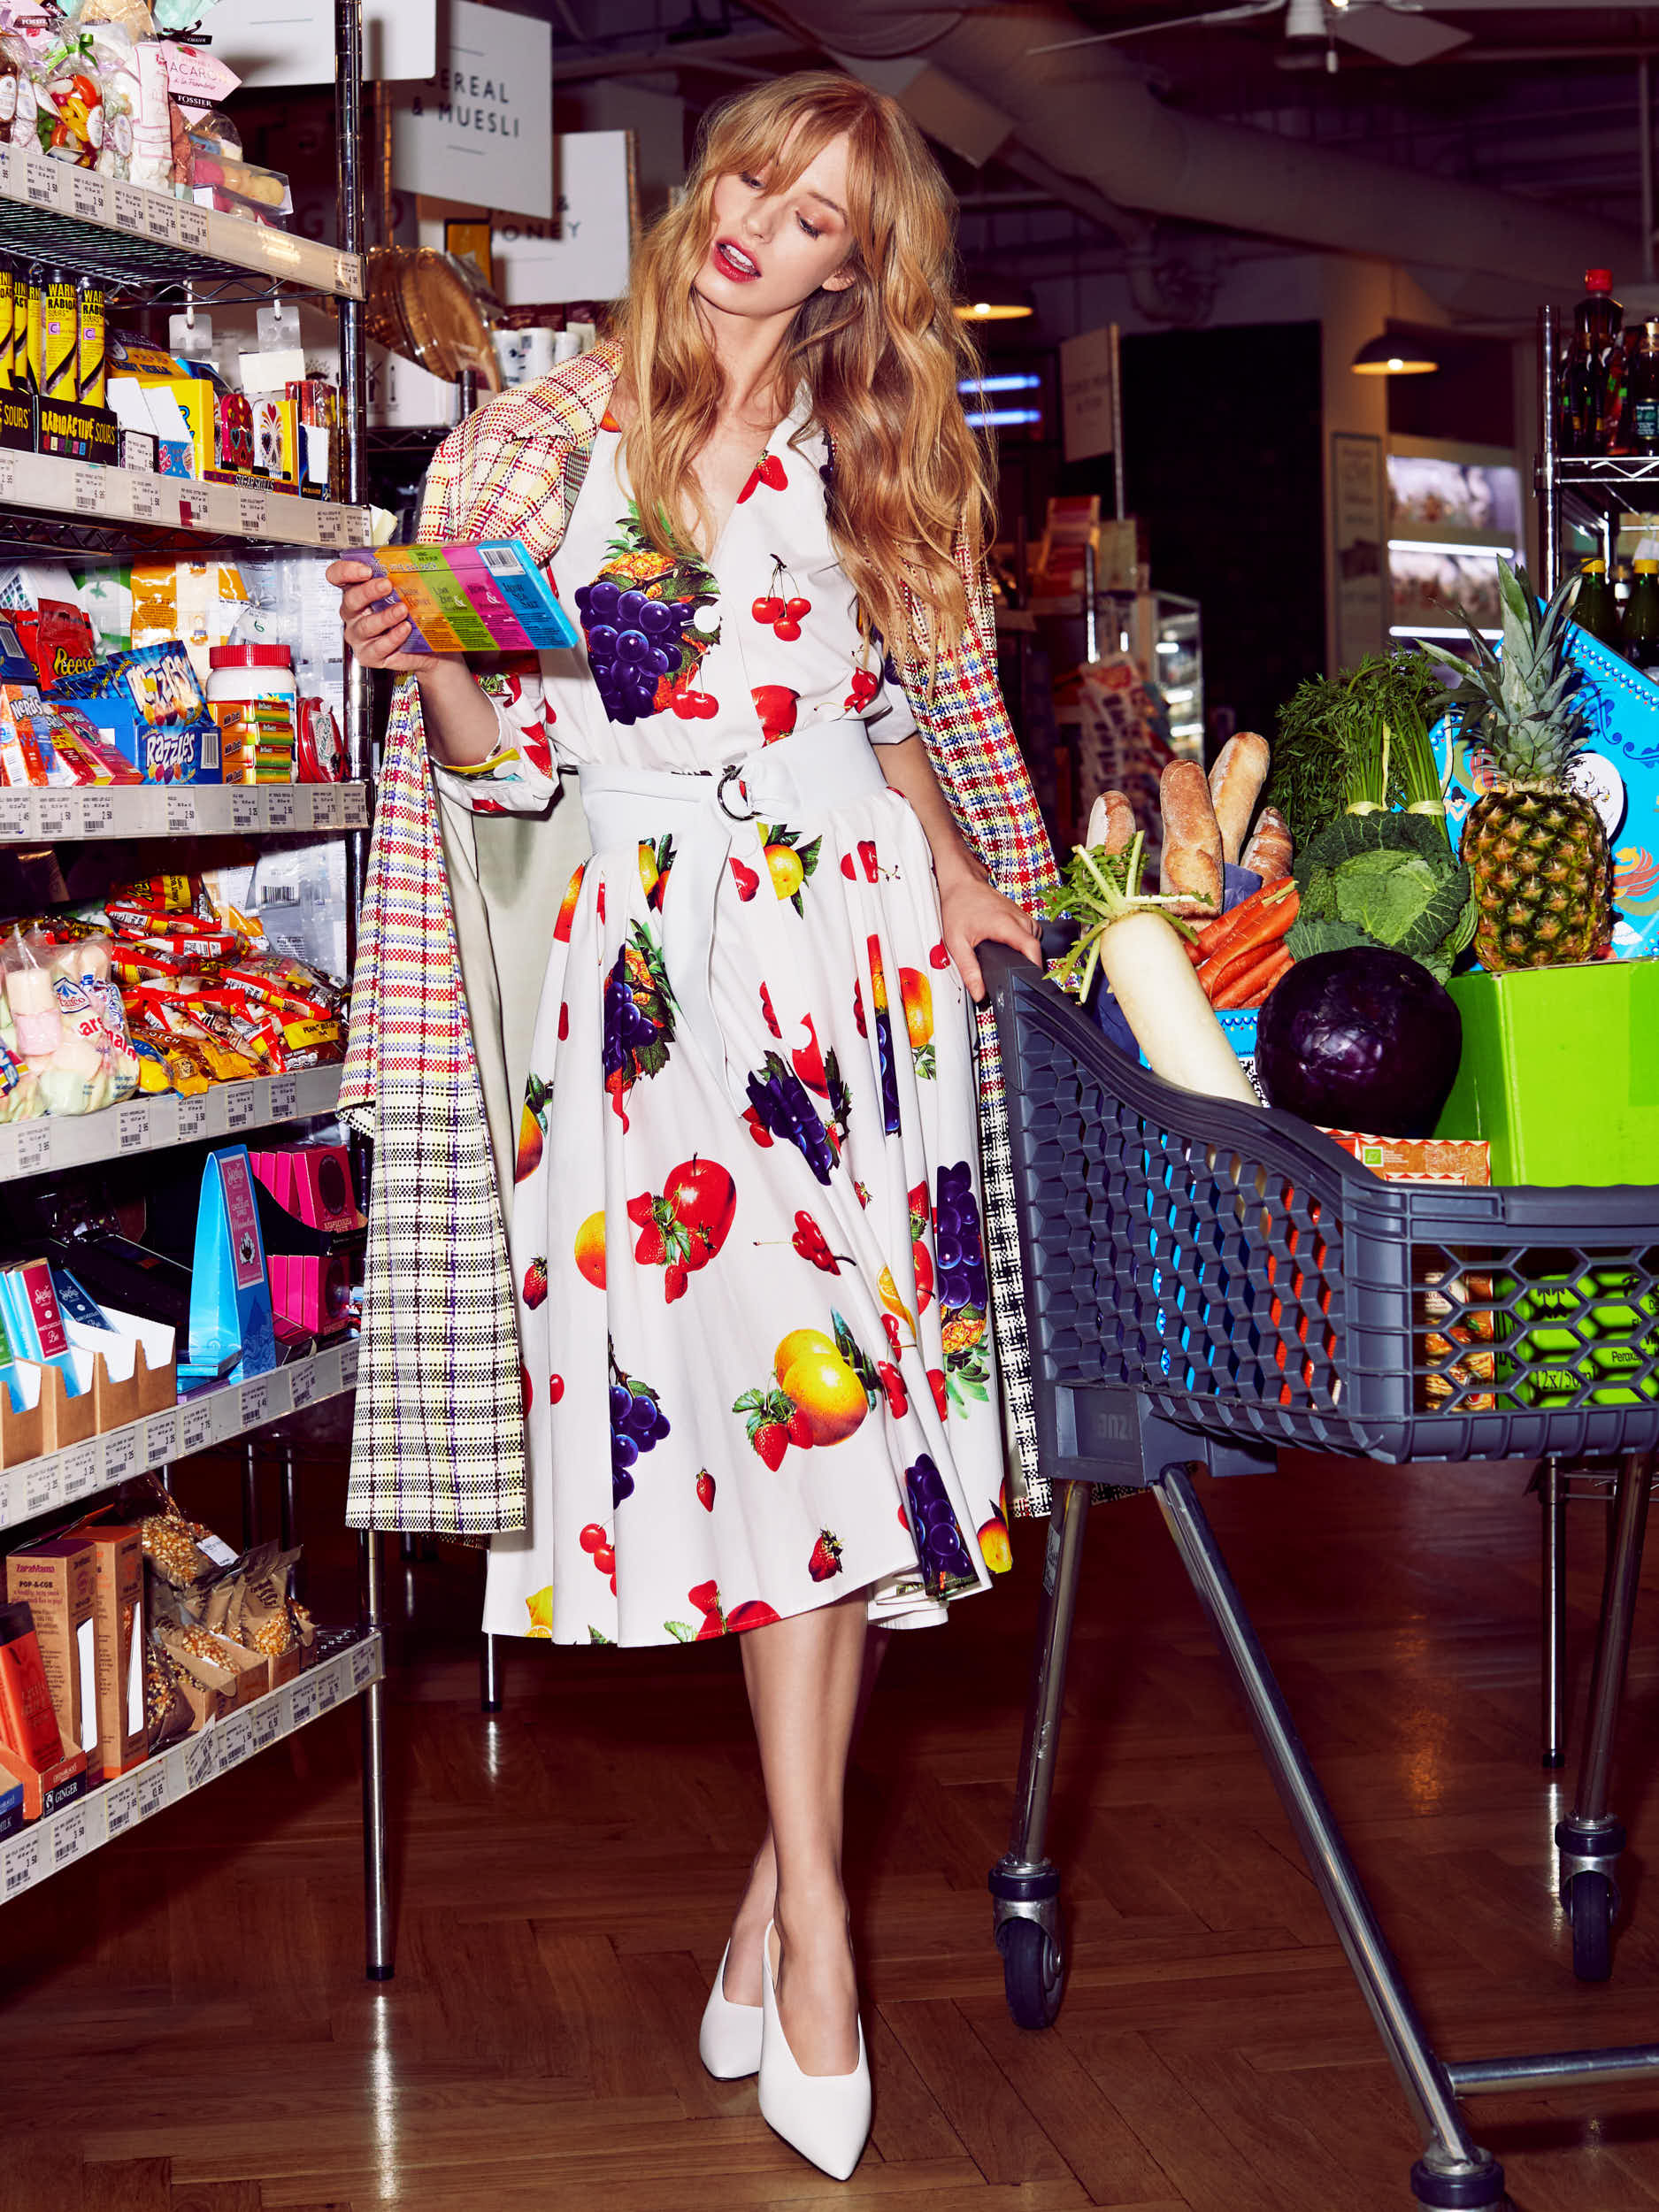 Image_Magazine_Supermarket_Sweep_03WebSite.jpg